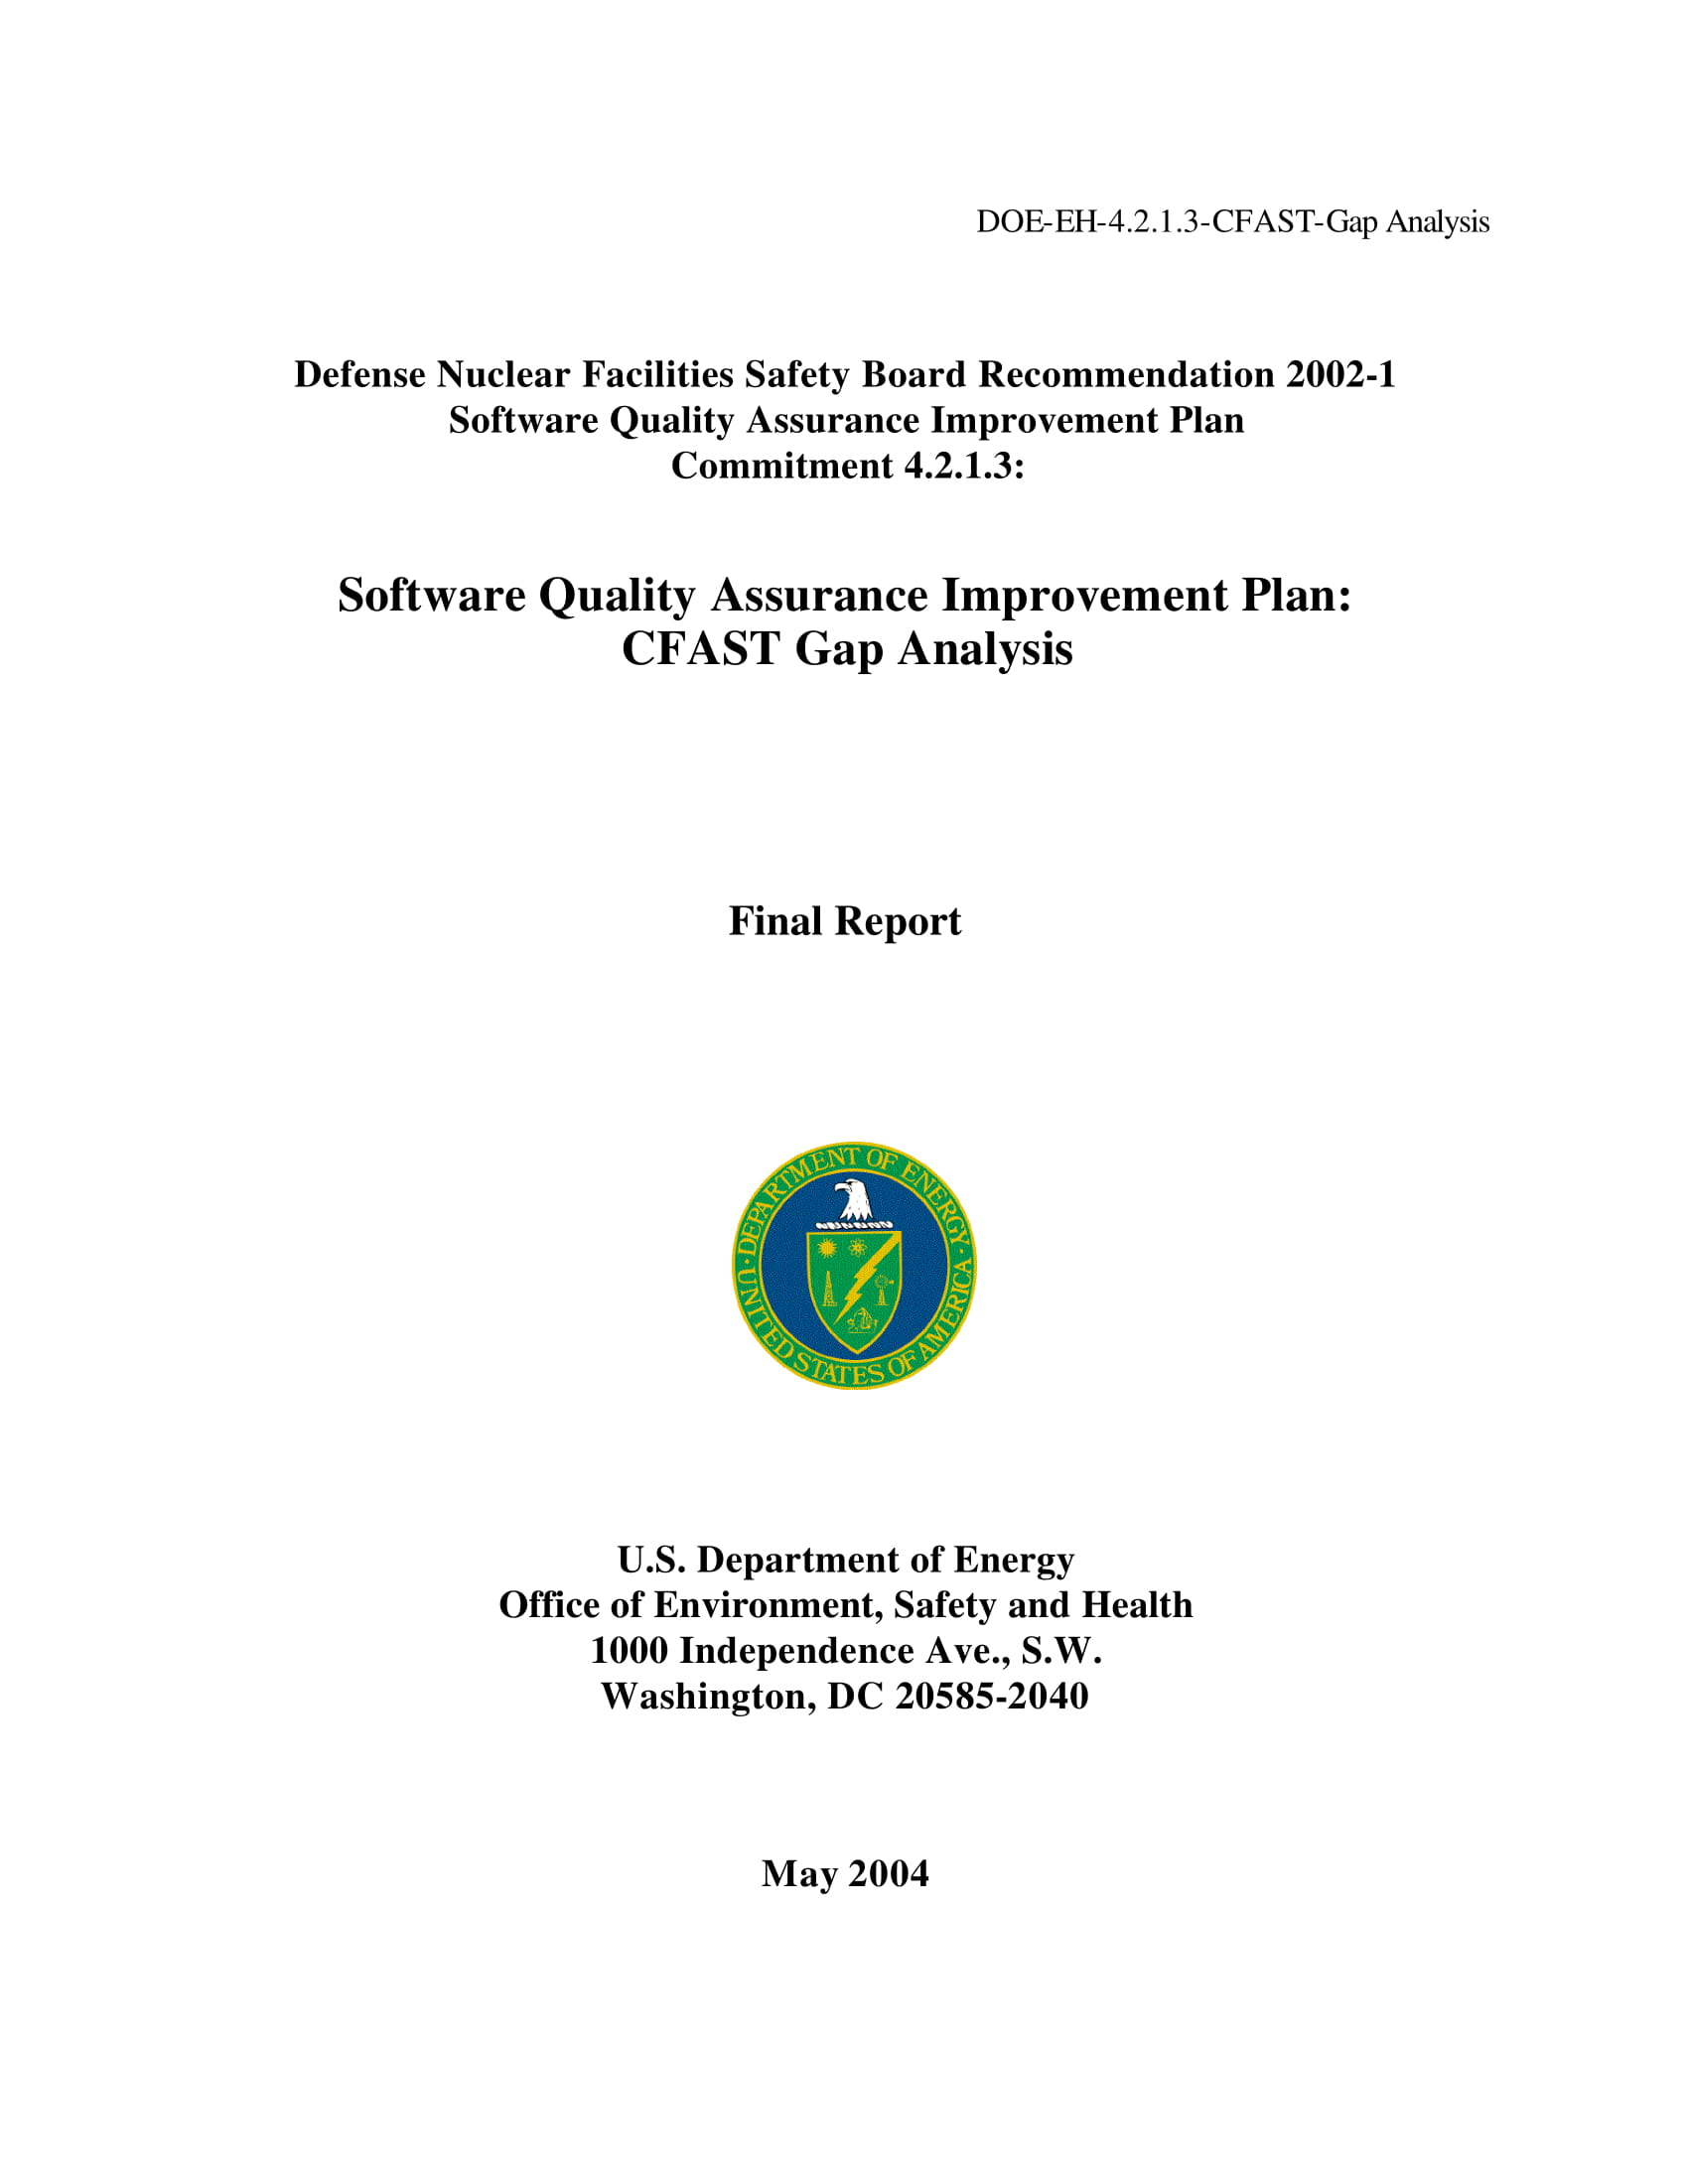 software quality assurance gap analysis example